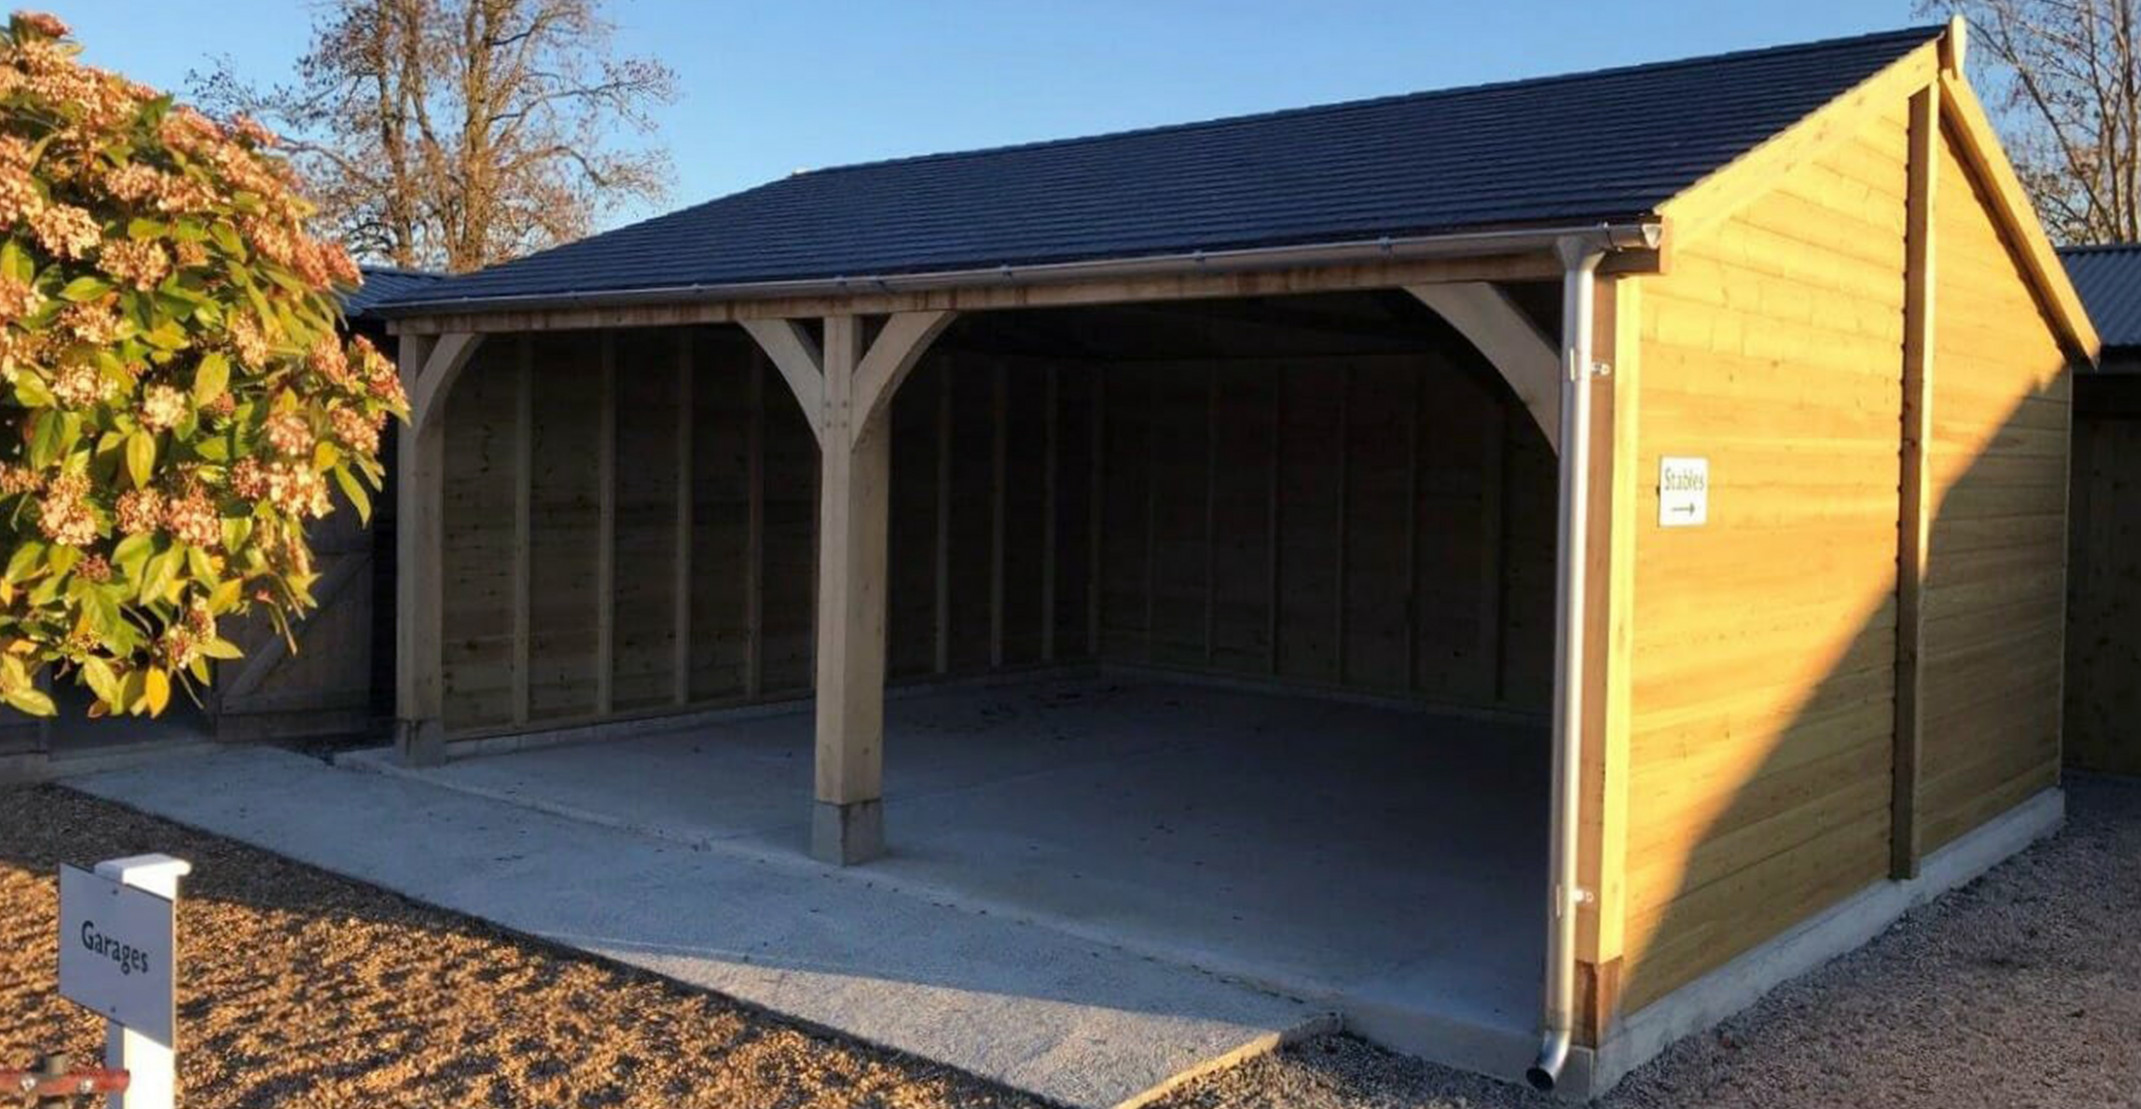 Wooden Carports In Devon By Shields Garden Buildings Materials Needed To Build A Wooden Carport.jpg